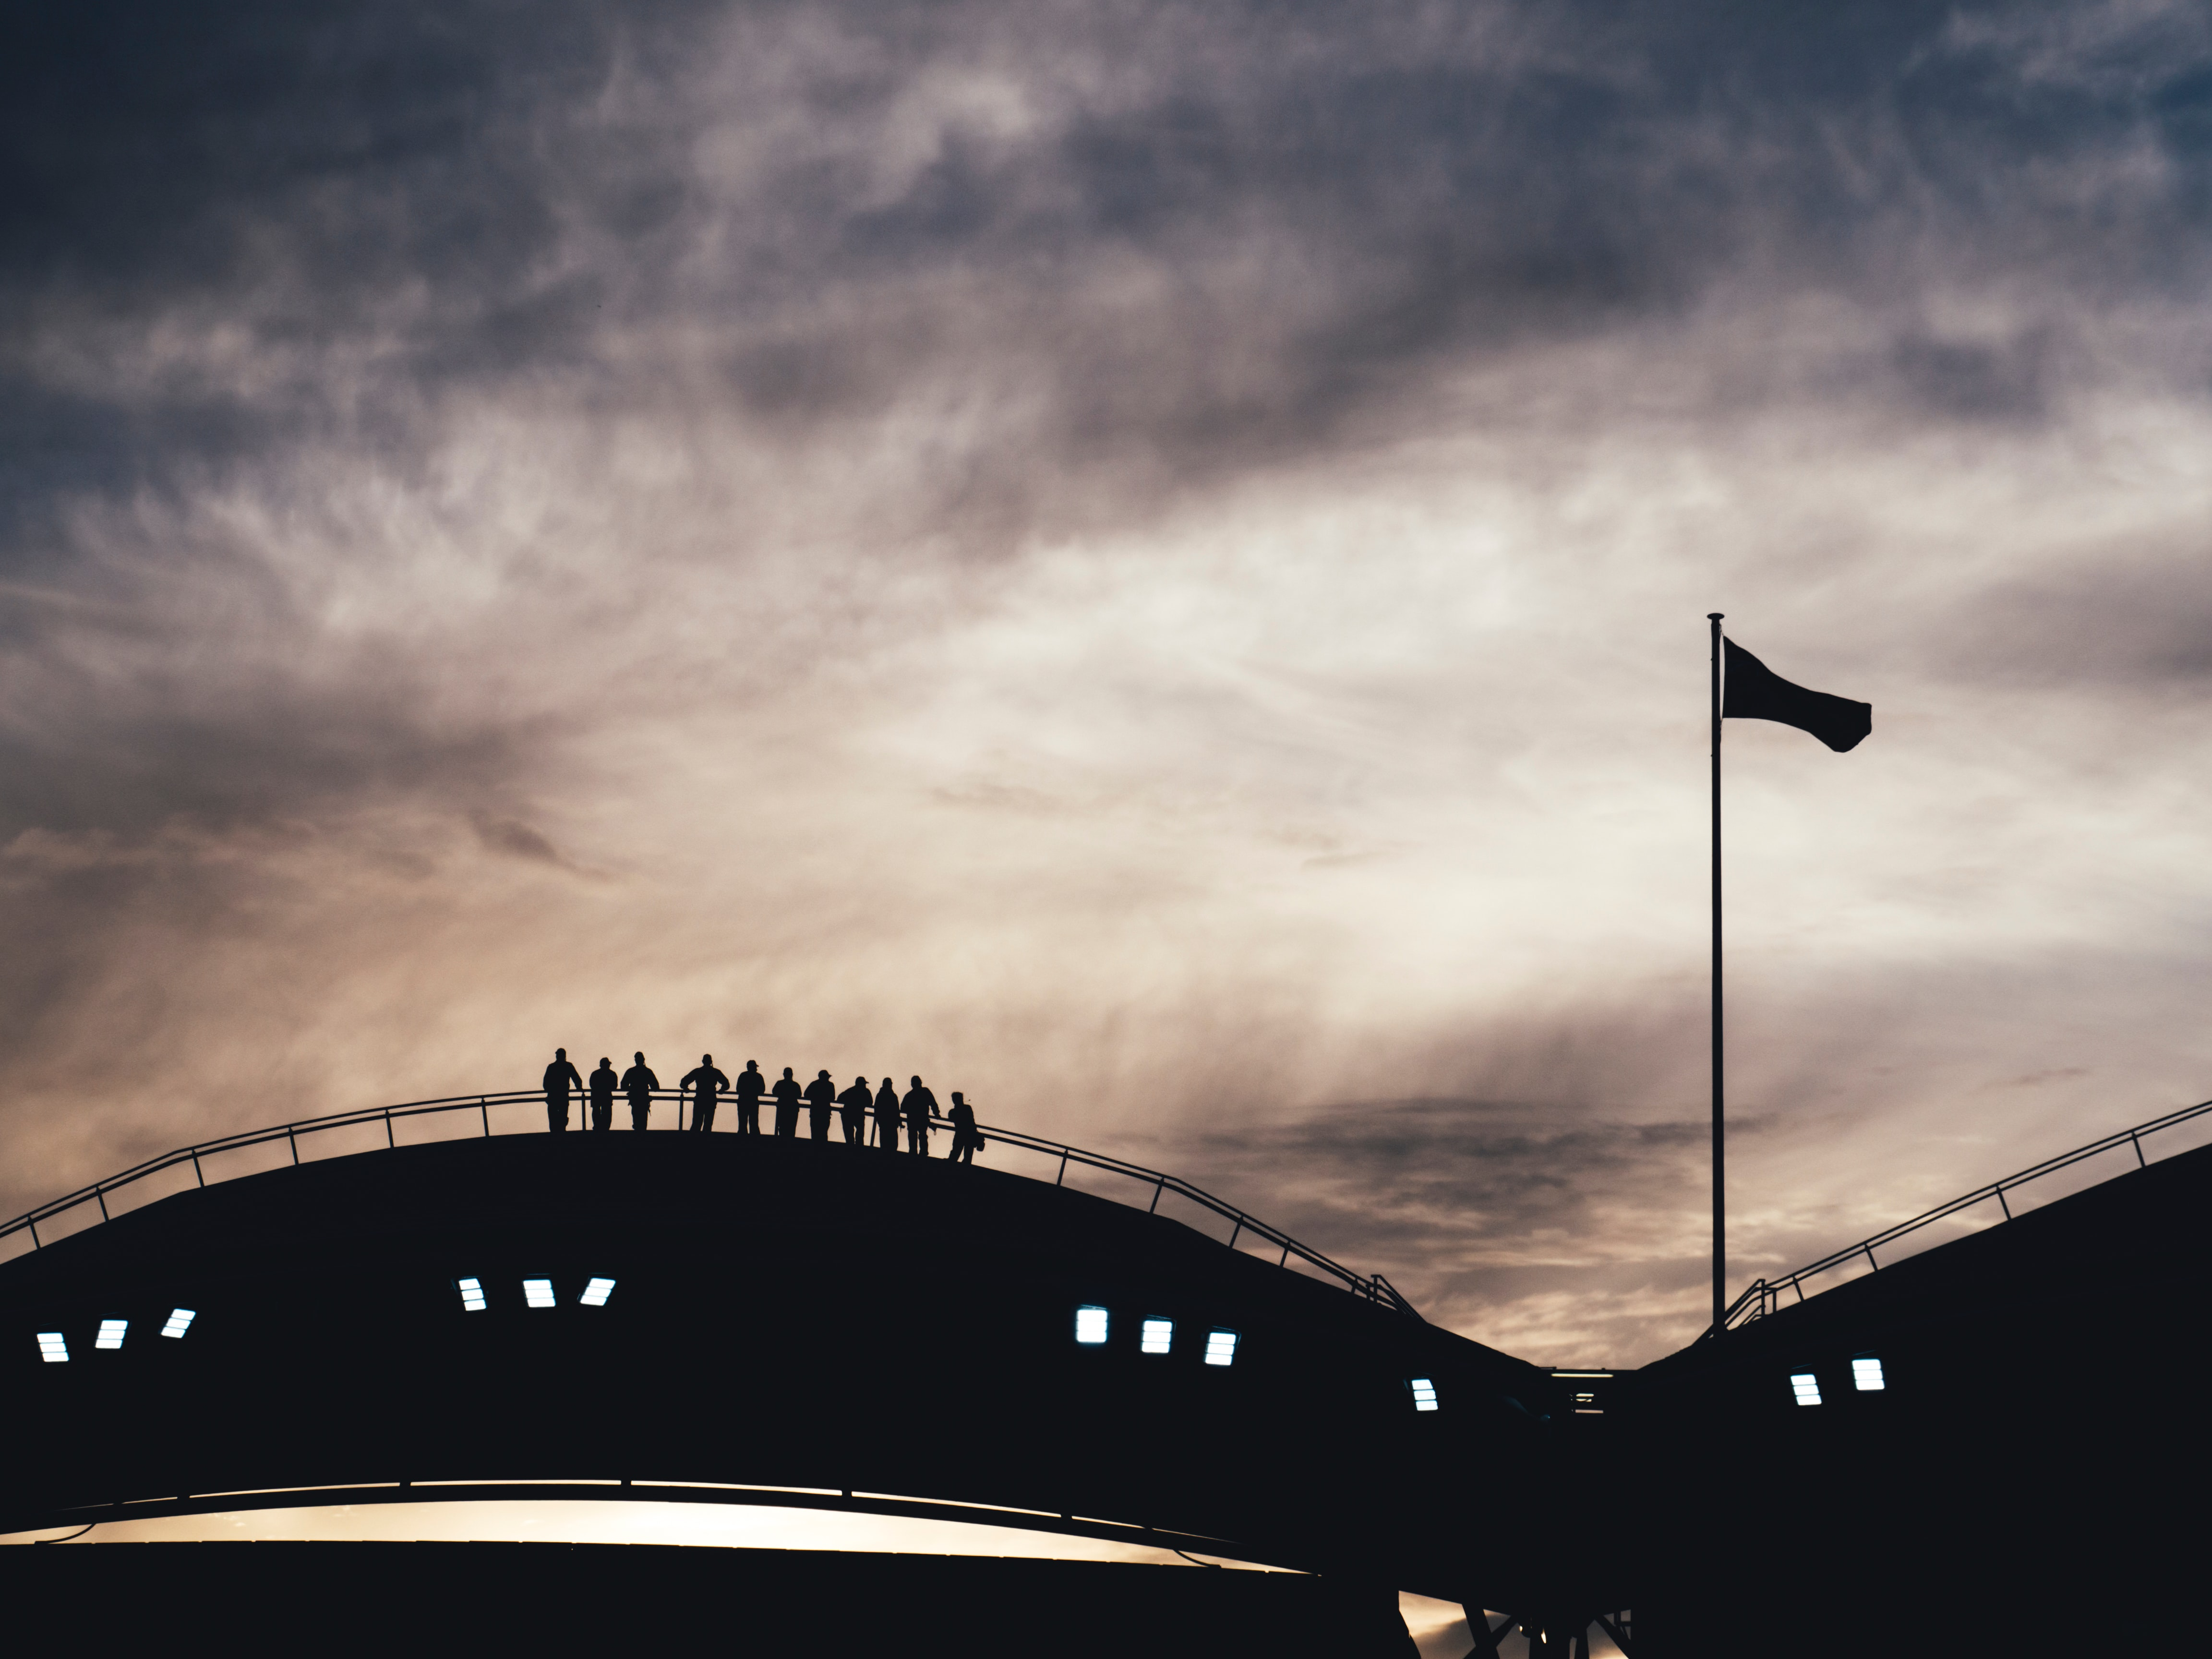 Adelaide Oval, things to see in Adelaide, Australia